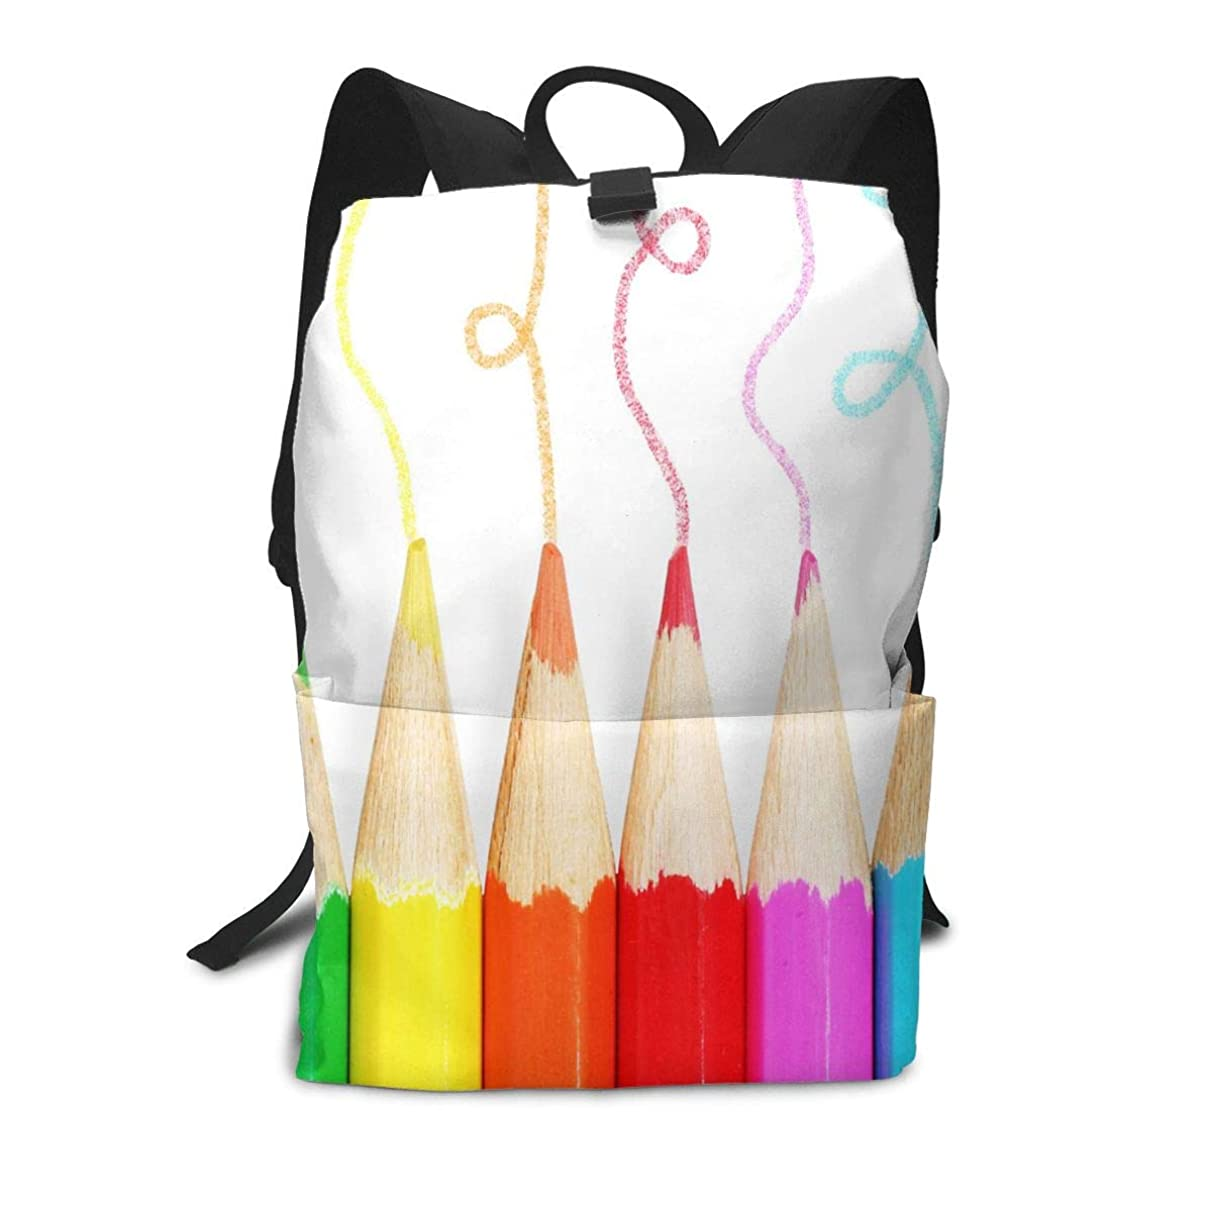 Backpack Colored Pencils Fantastic Shoulders Bag Classic Lightweight Daypack for Adults